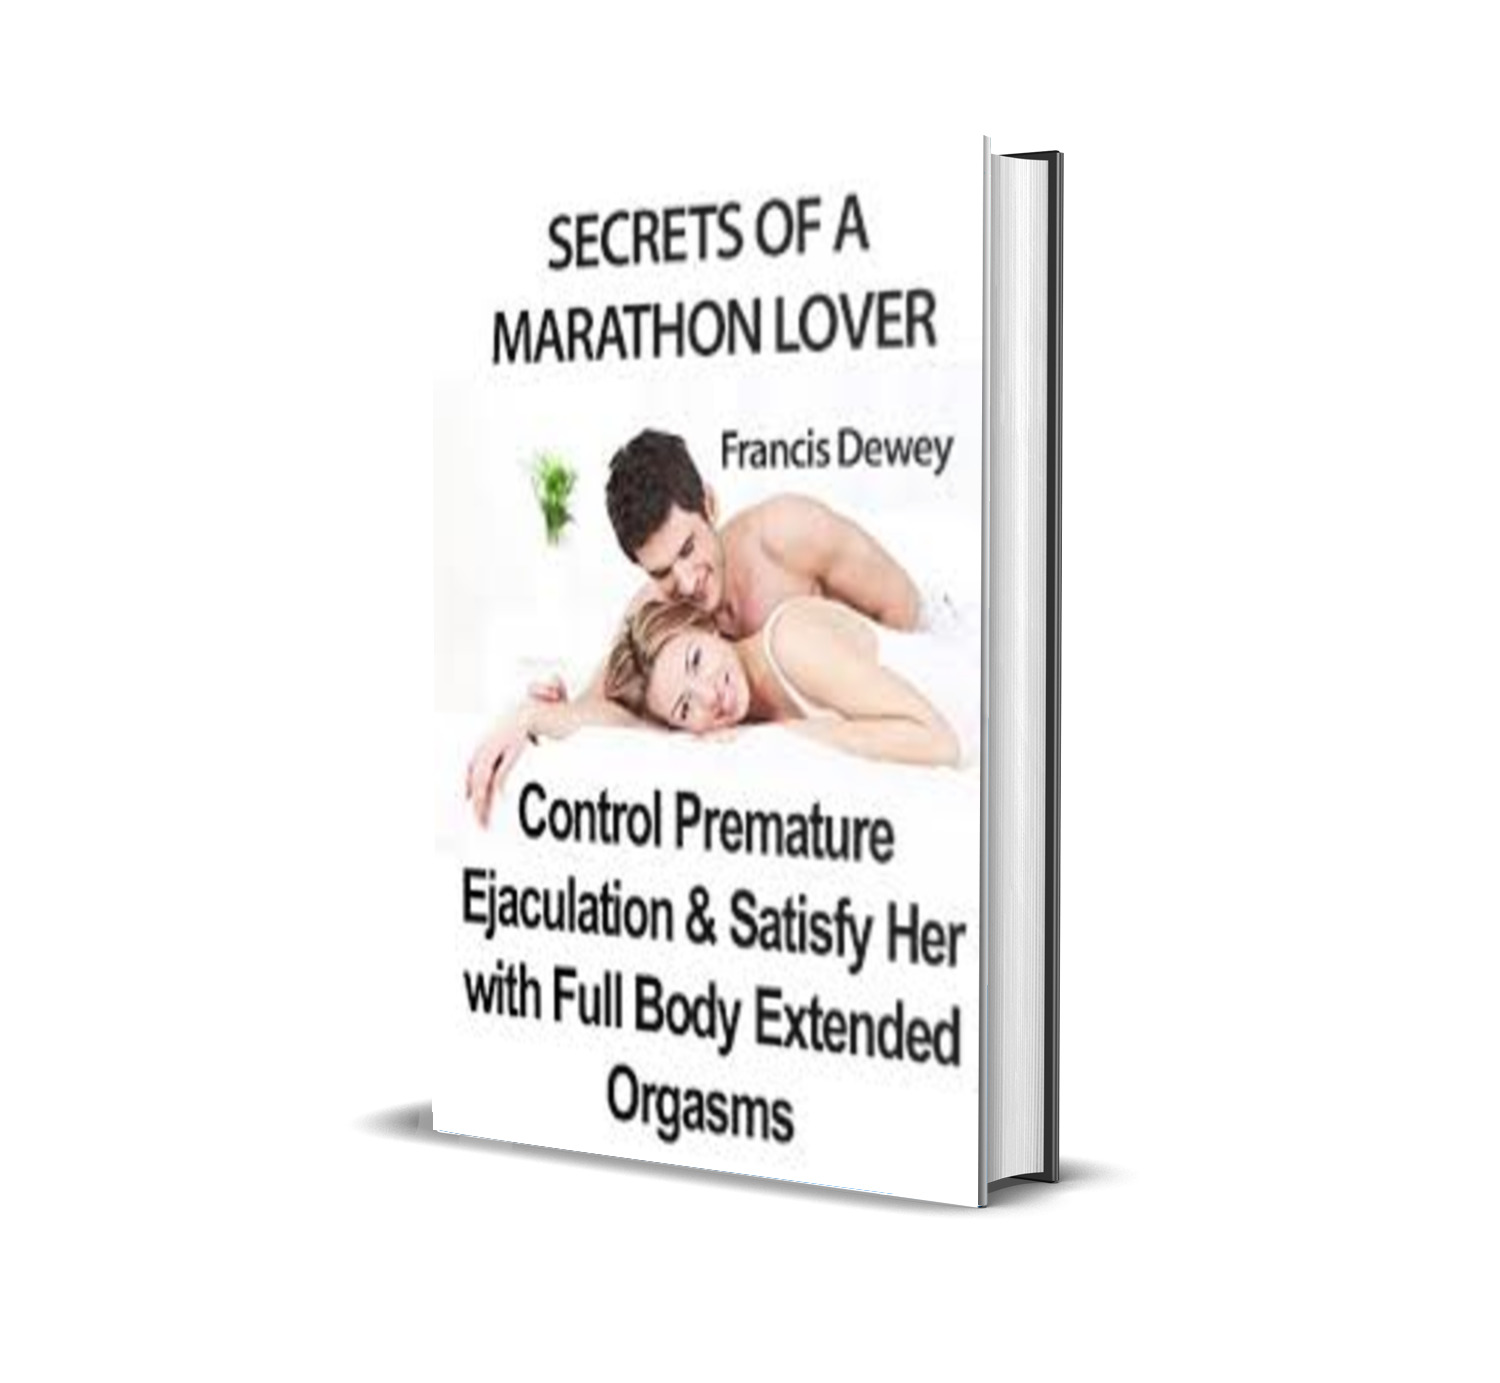 Secrets of a Marathon Lover Control Premature Ejaculation & Satisfy Her with Full Body Extended Orgasms- Francis Dewey